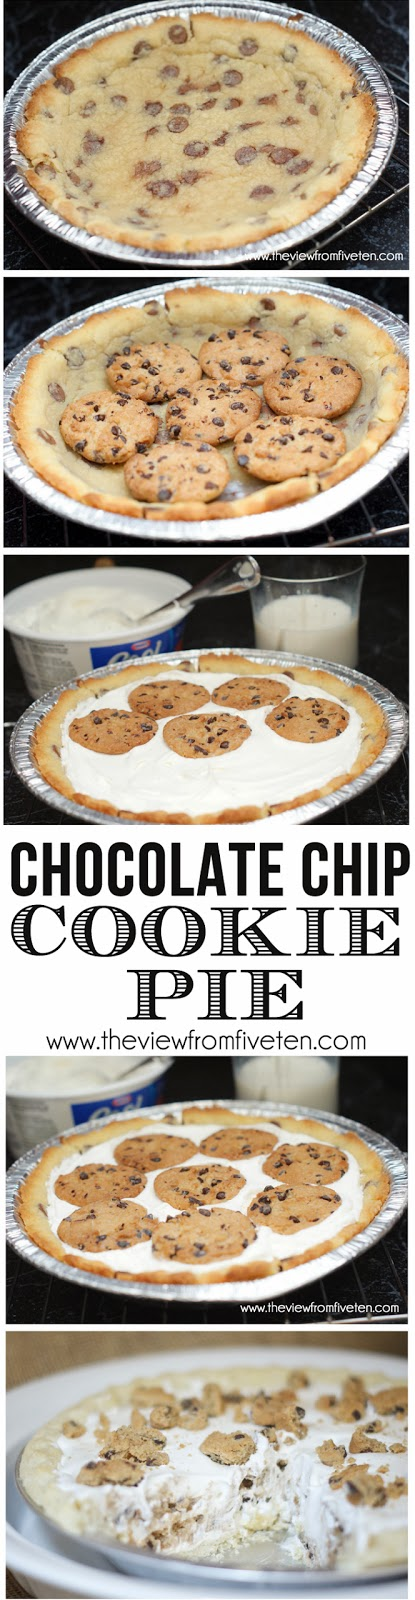 Chocolate Chip Cookie BOMB Pie #Recipe